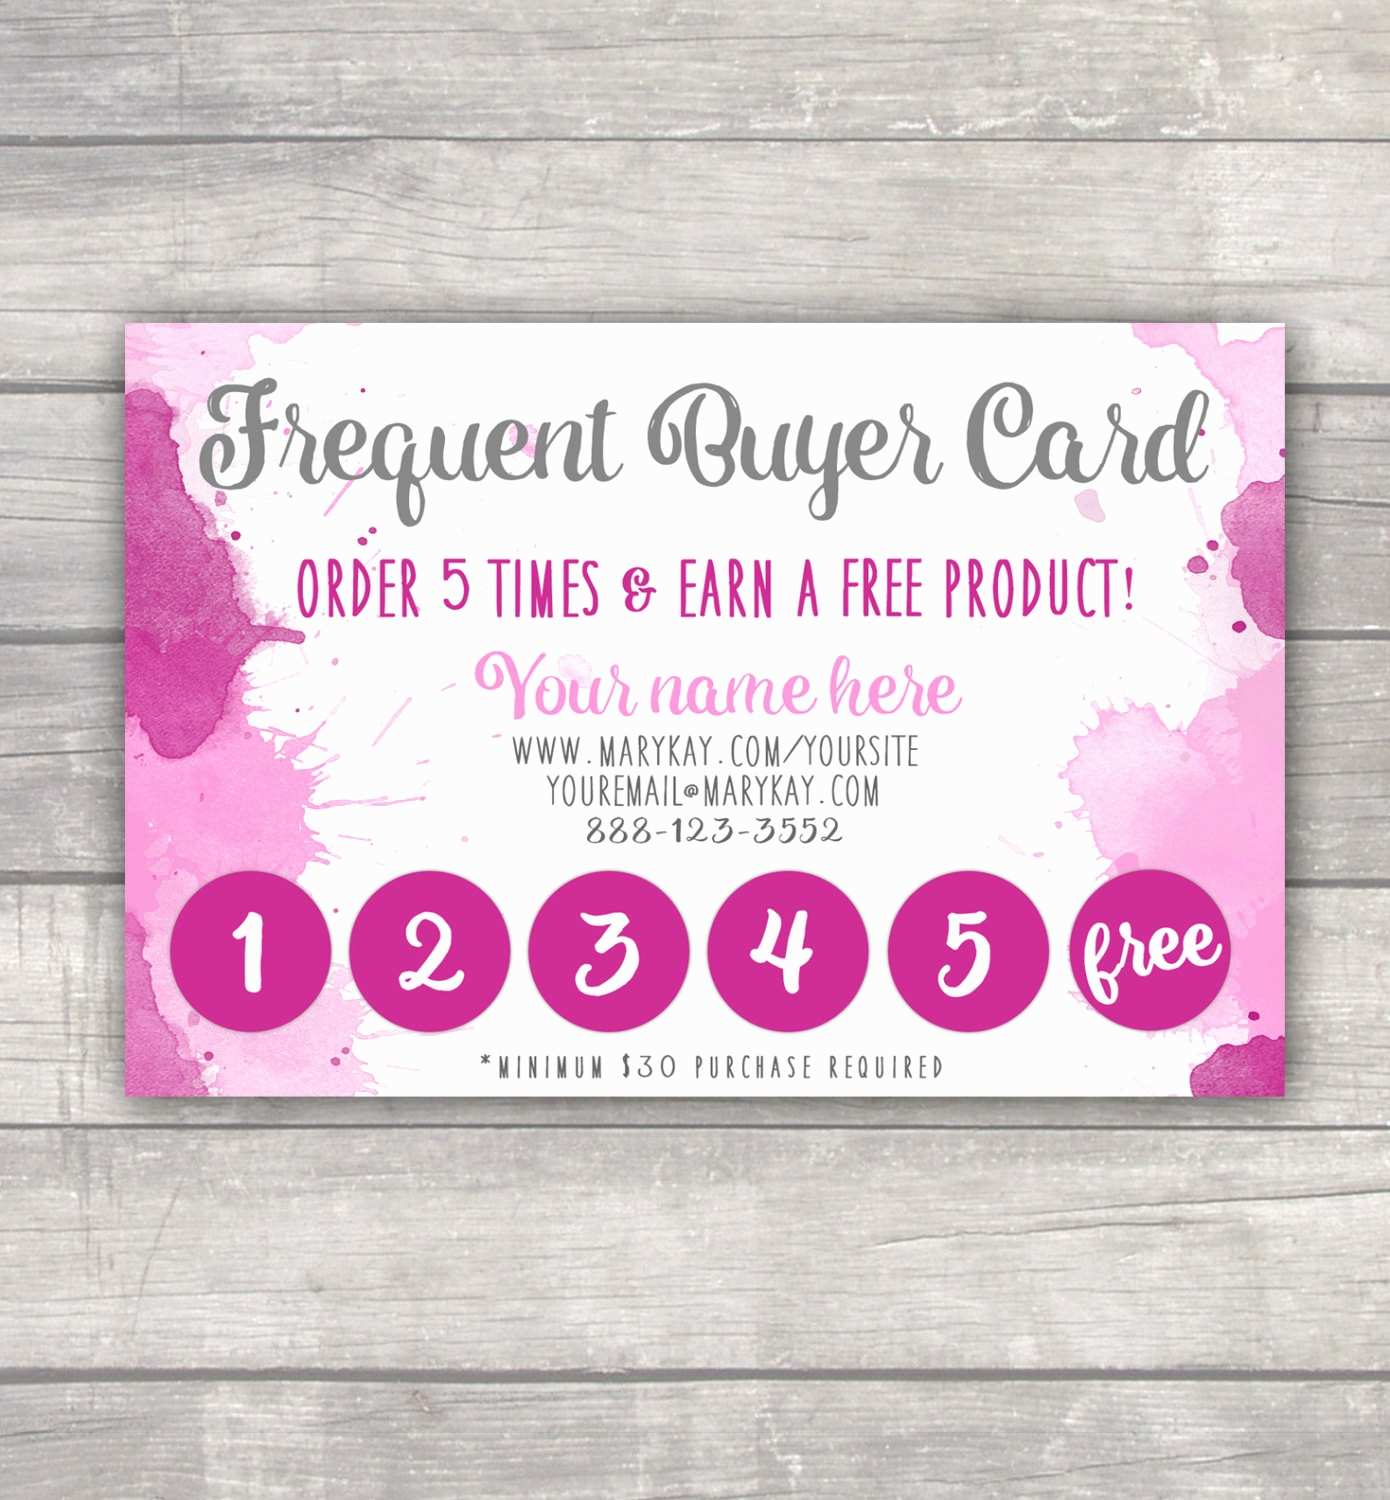 mary kay birthday card ; business-punch-card-template-free-new-nice-customer-loyalty-cards-for-small-business-ideas-business-card-of-business-punch-card-template-free